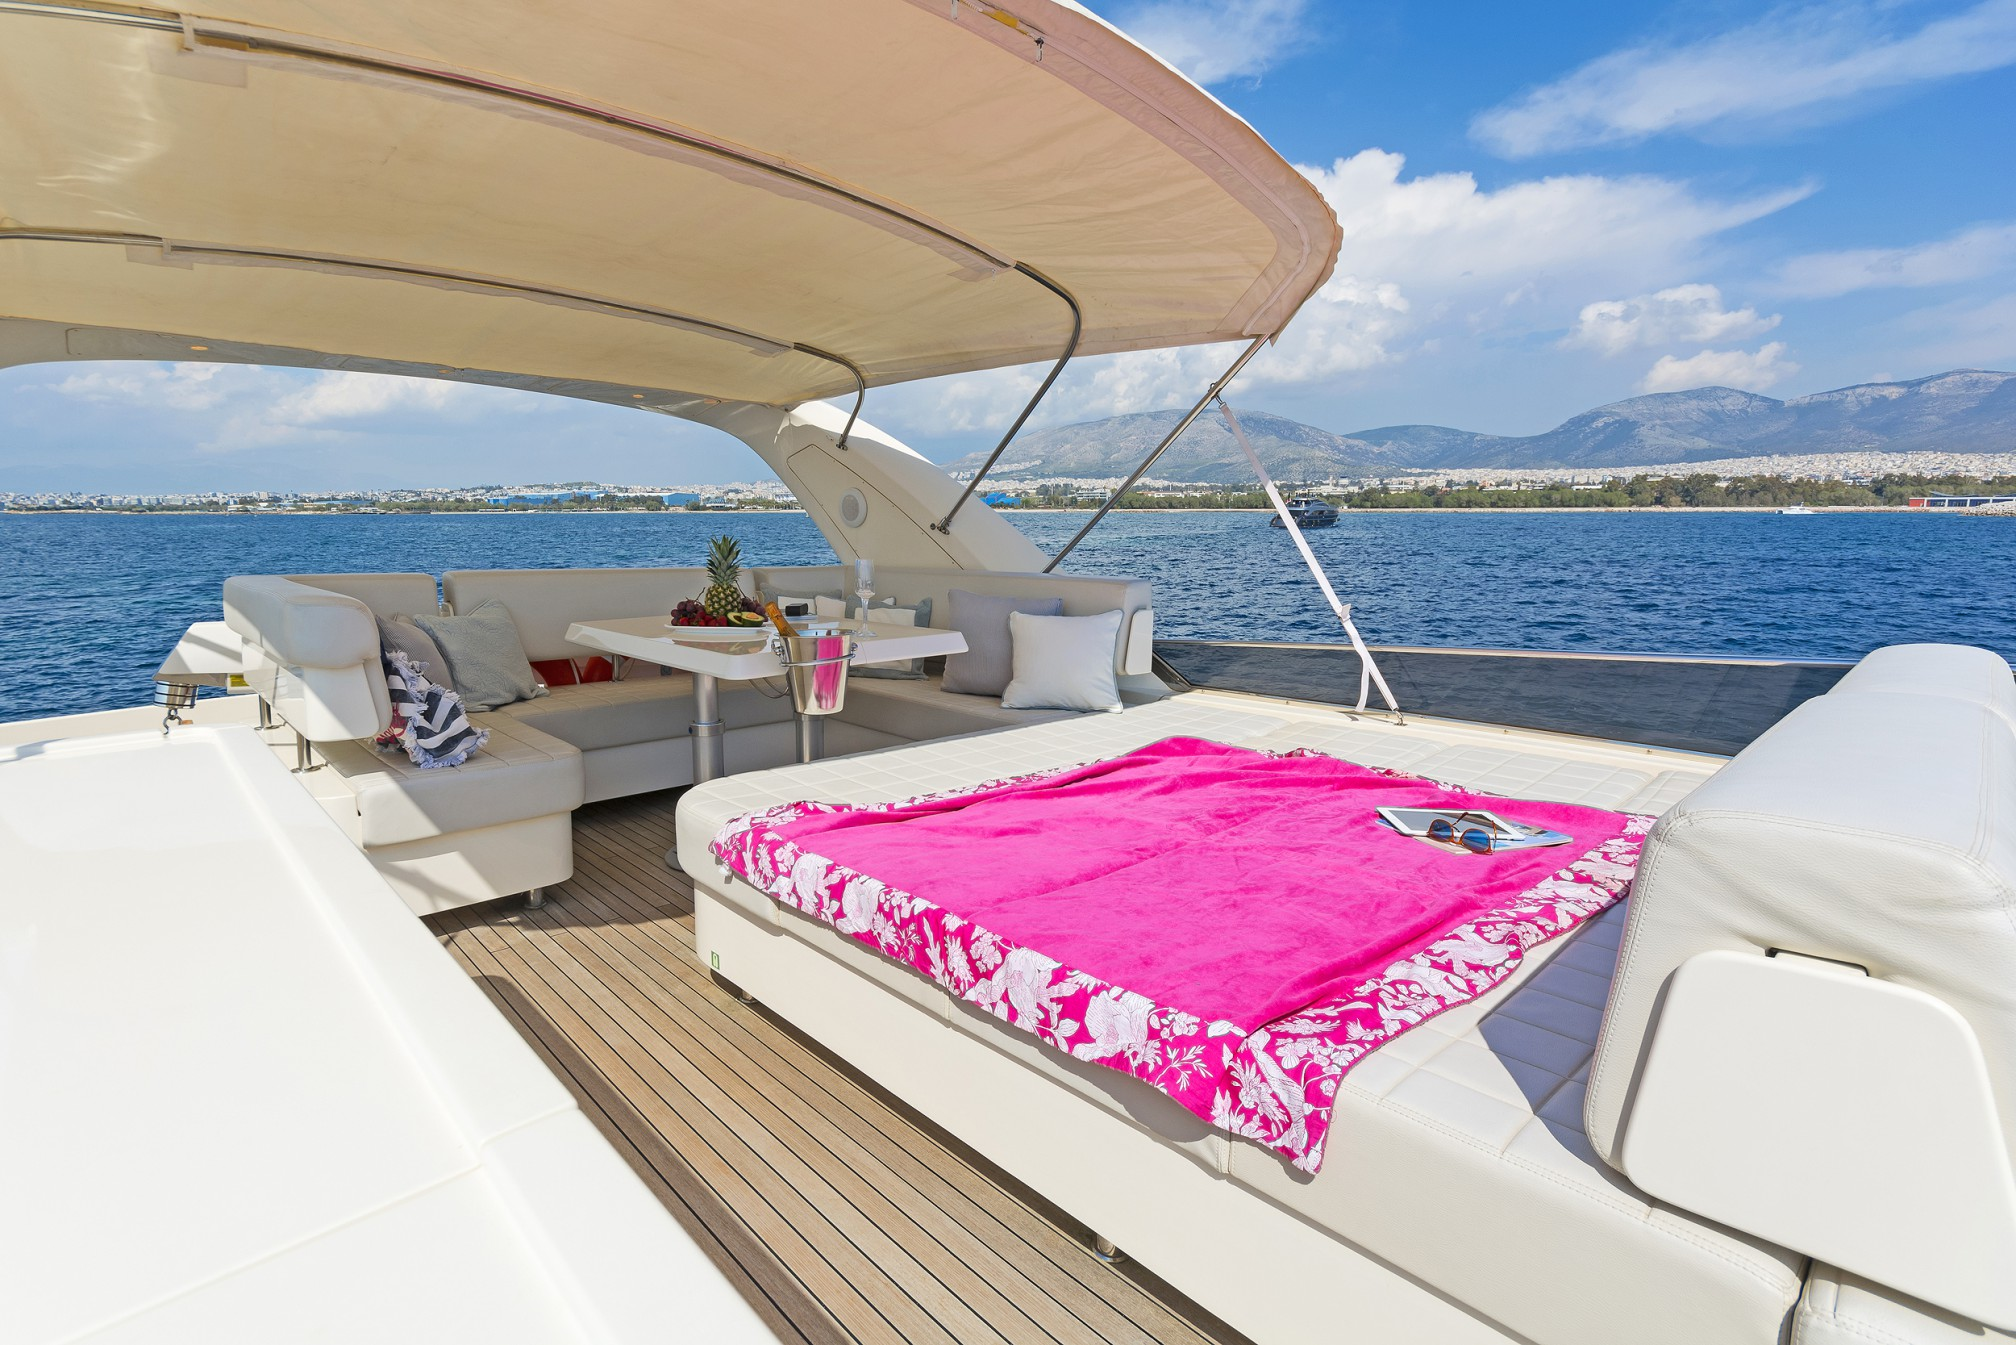 Rental yacht  outdoors